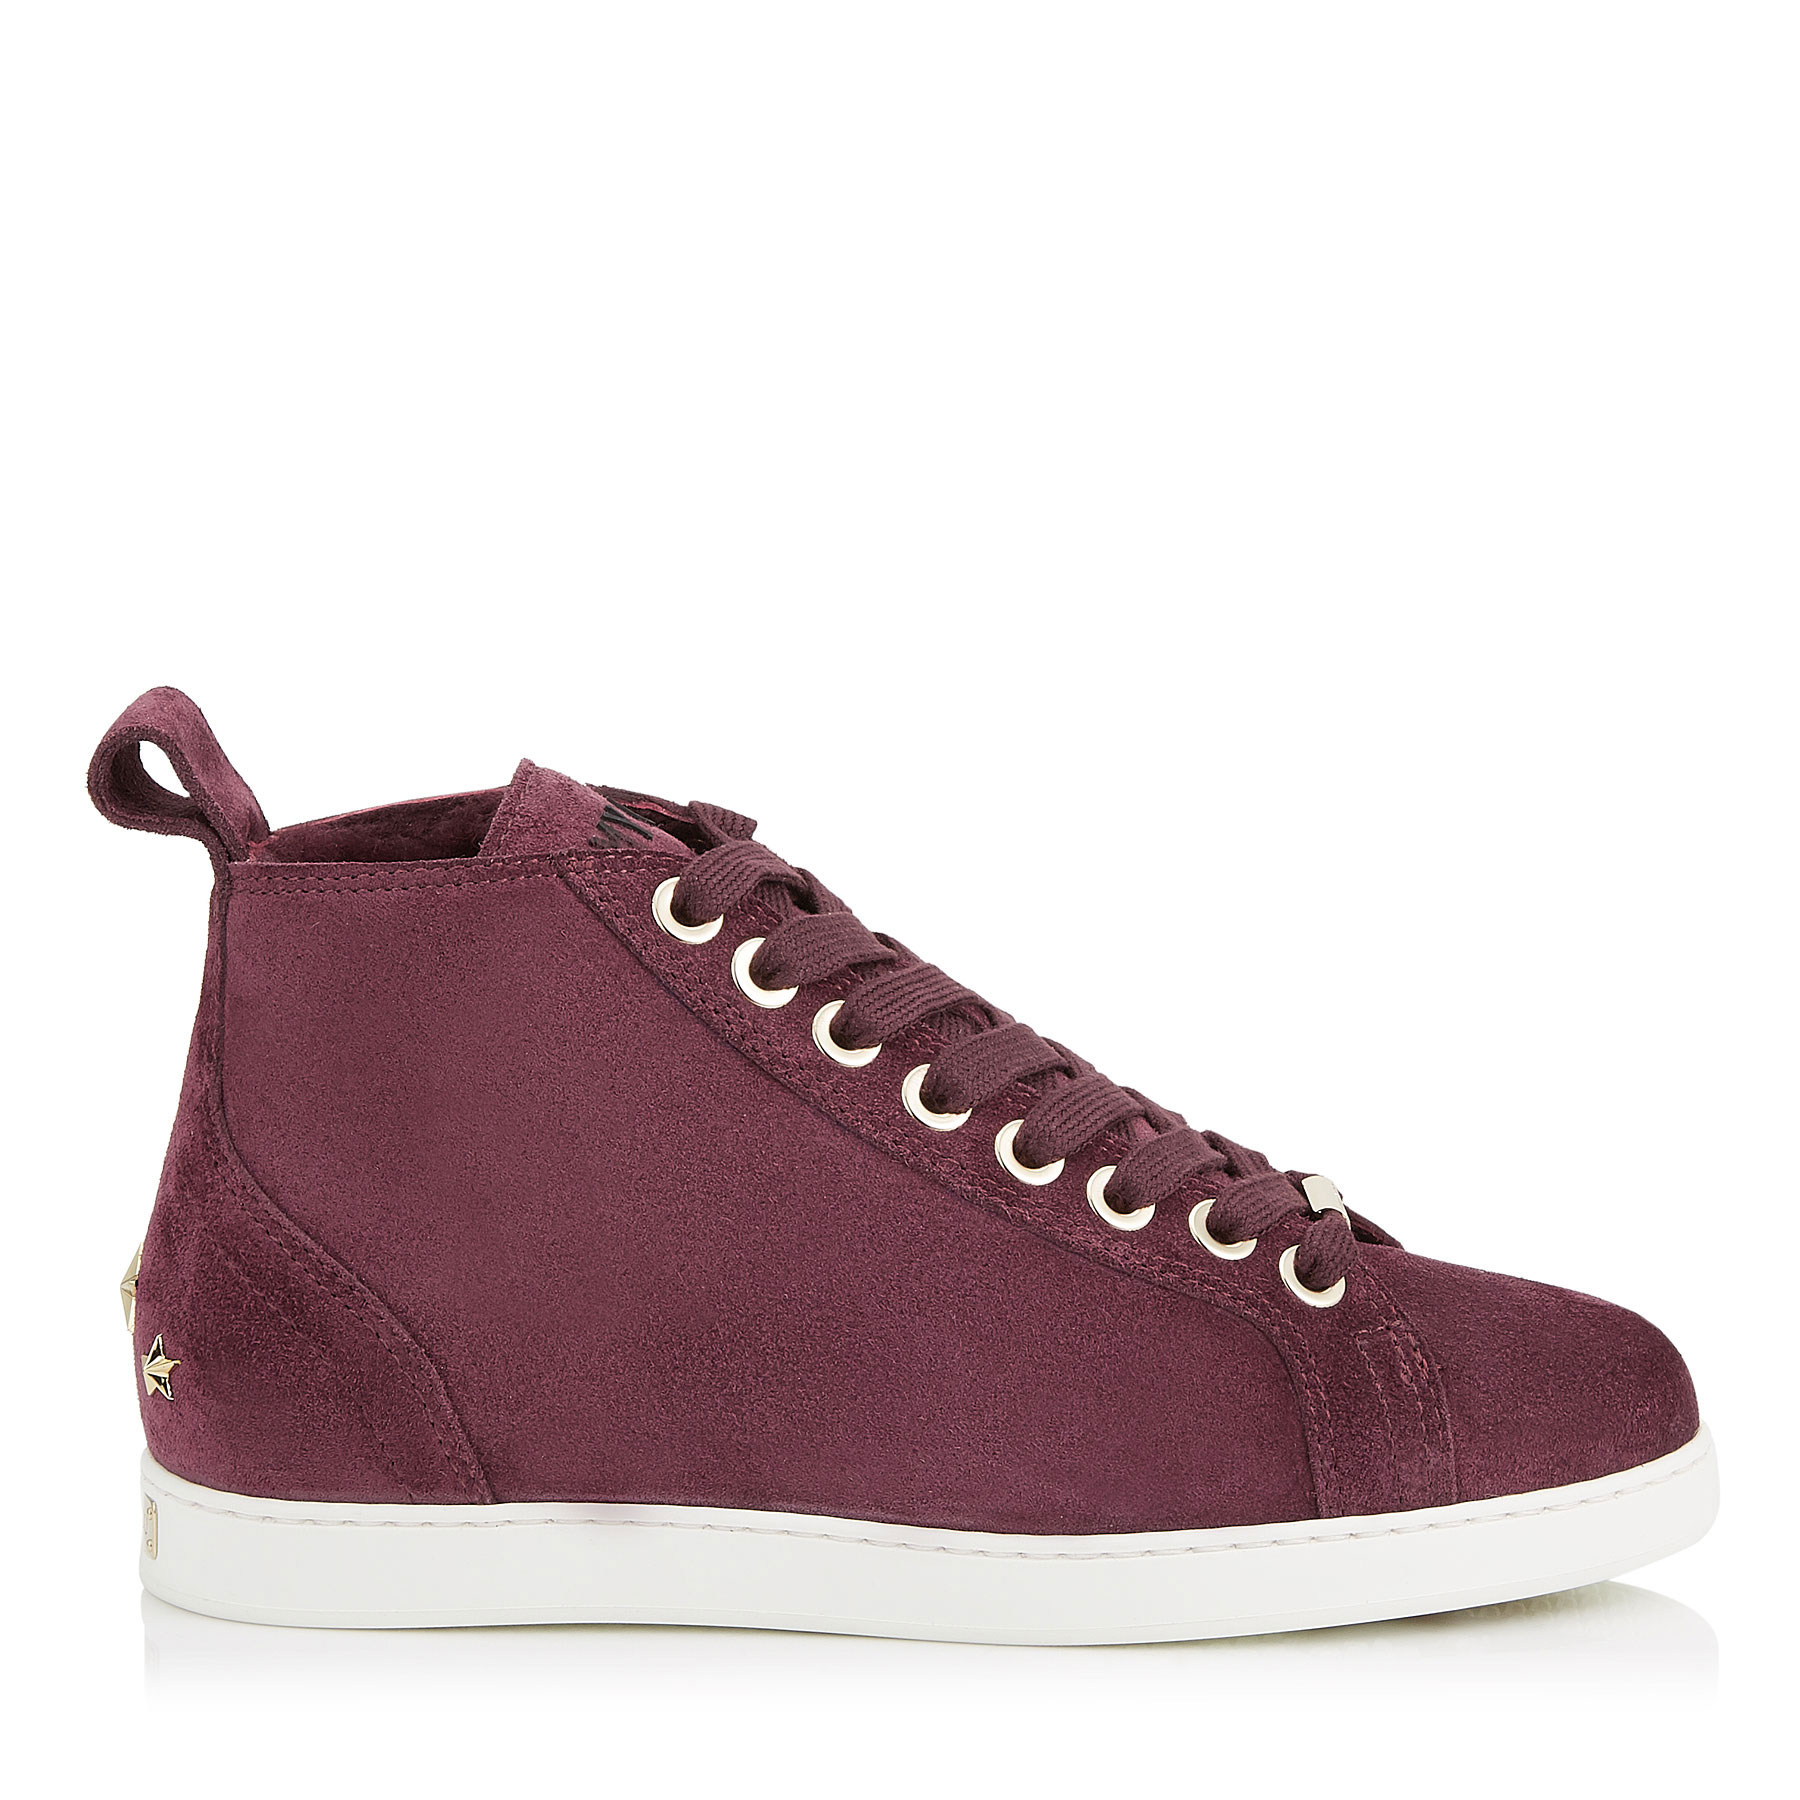 COLT/F Grape Velvet Suede High Top Trainers with Shearling Lining by Jimmy Choo